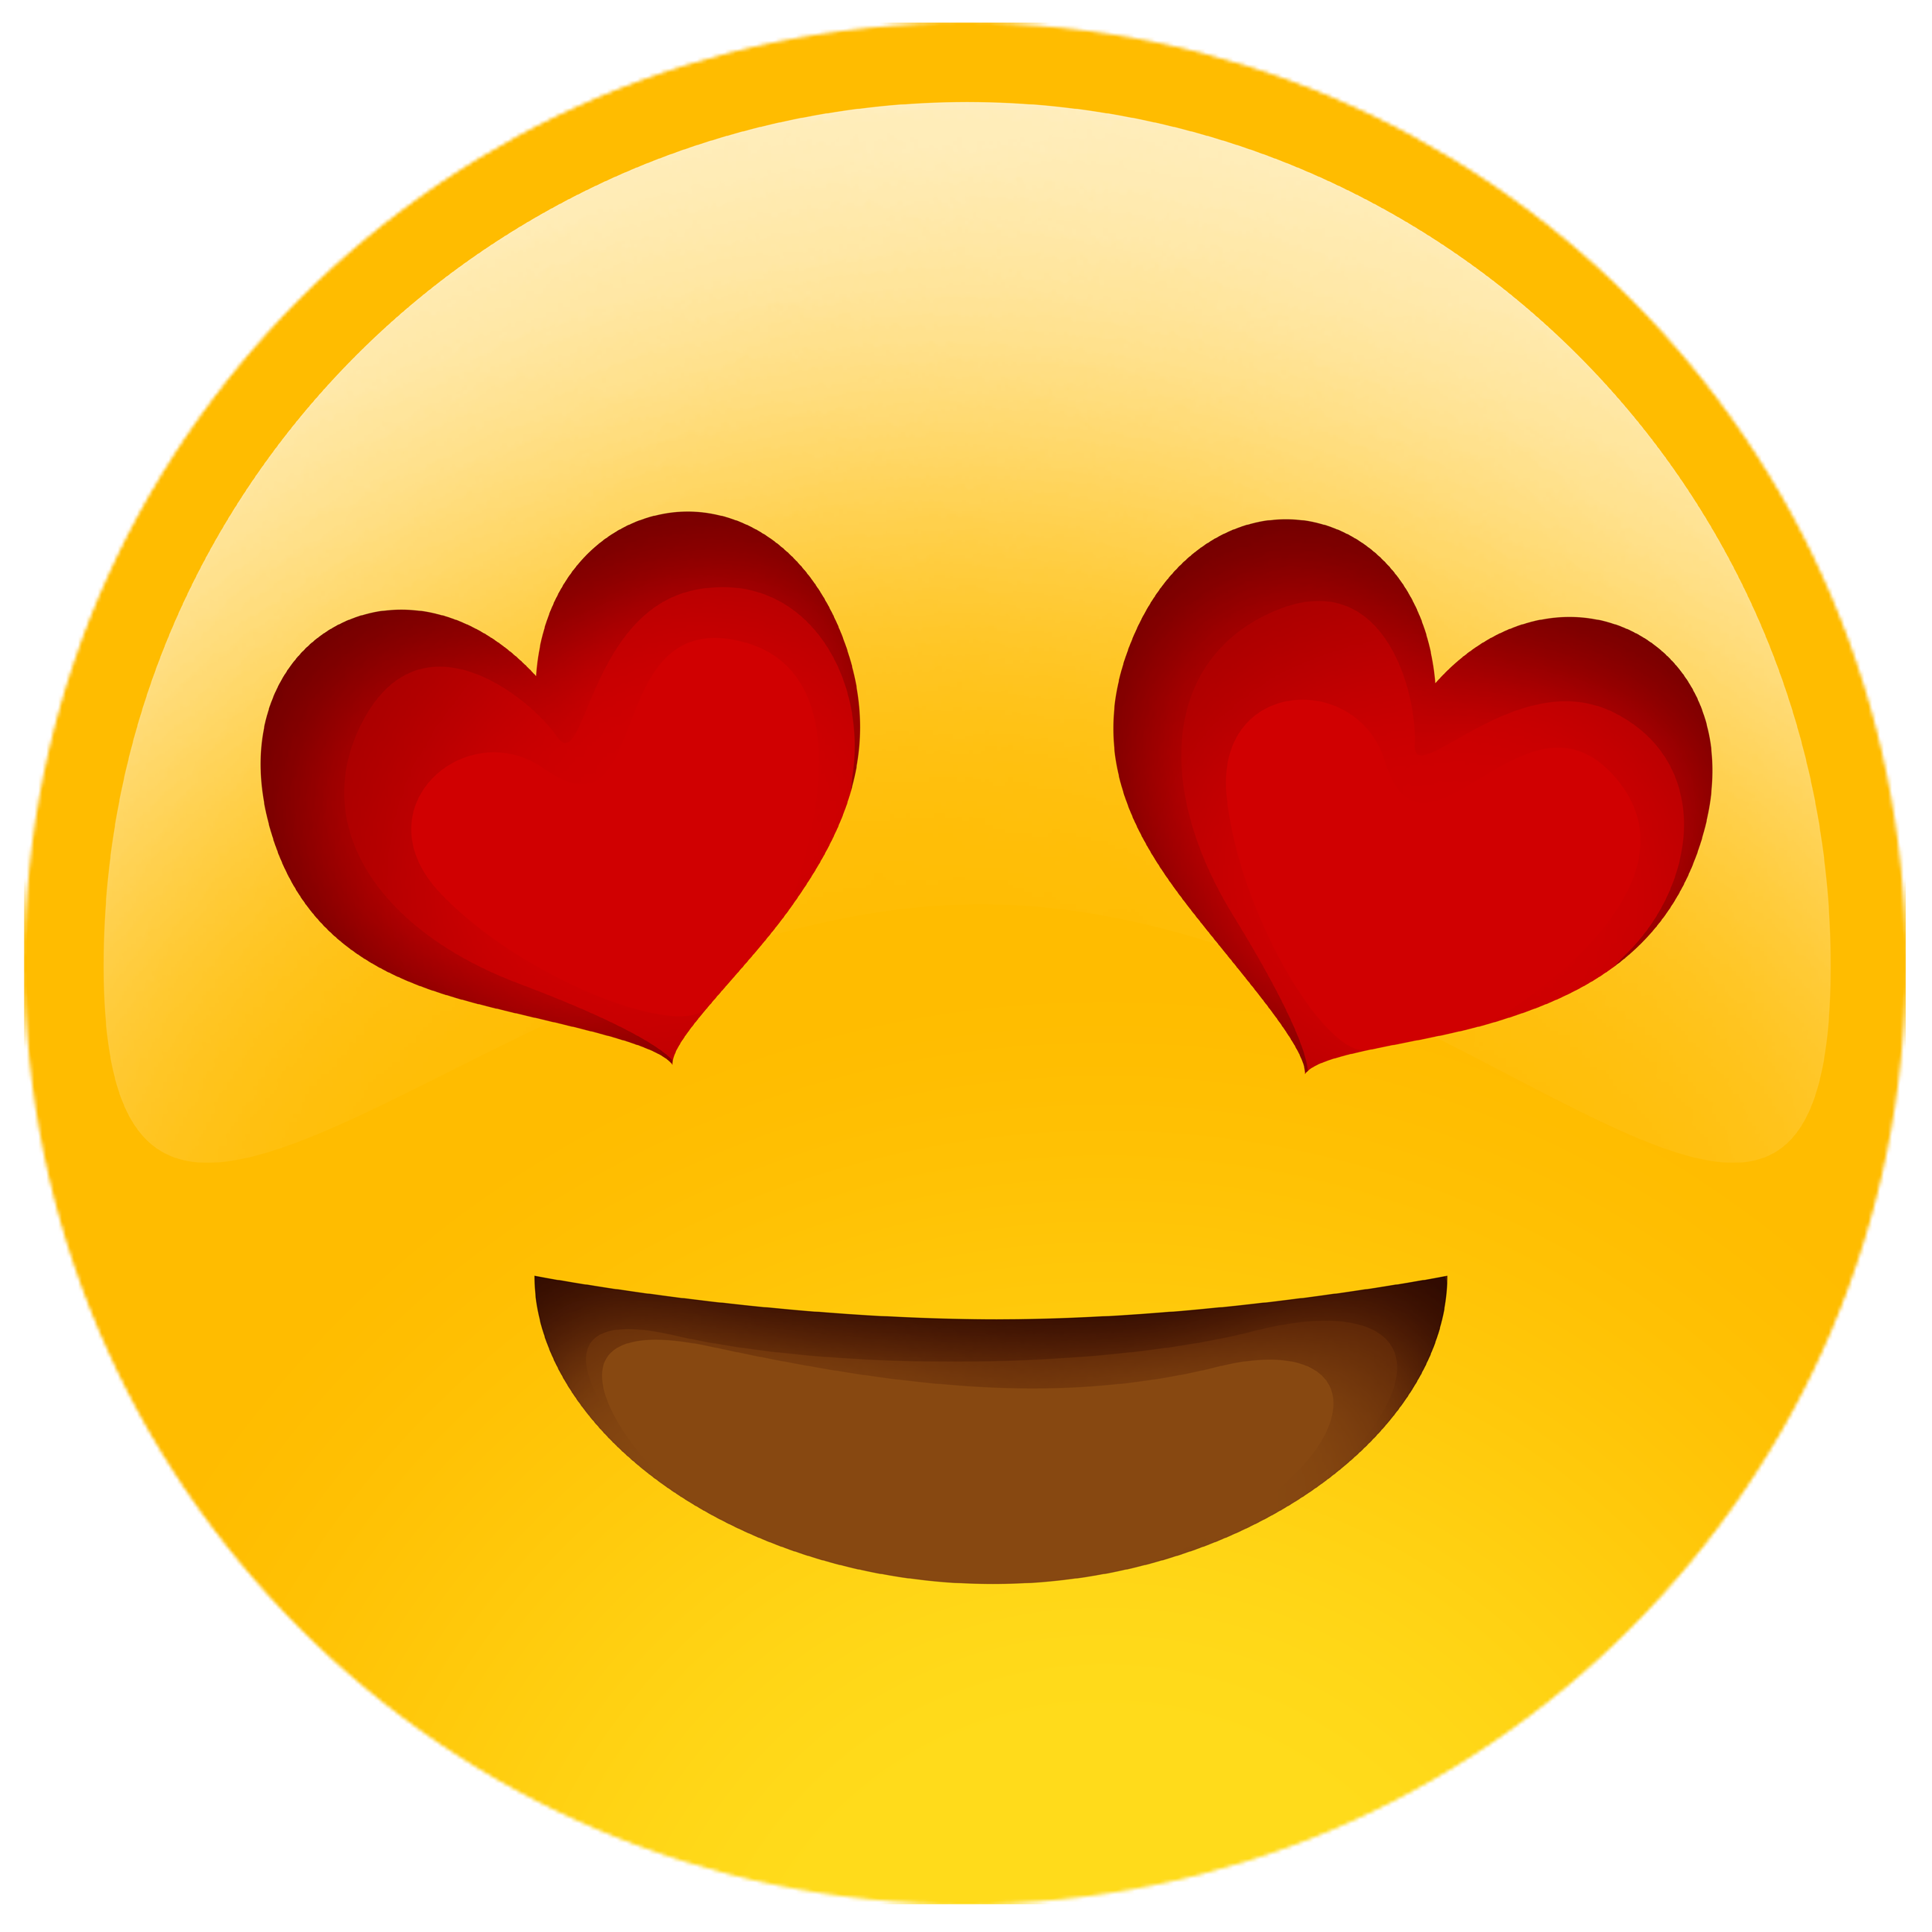 Images snapchat emojis red heart page 3.